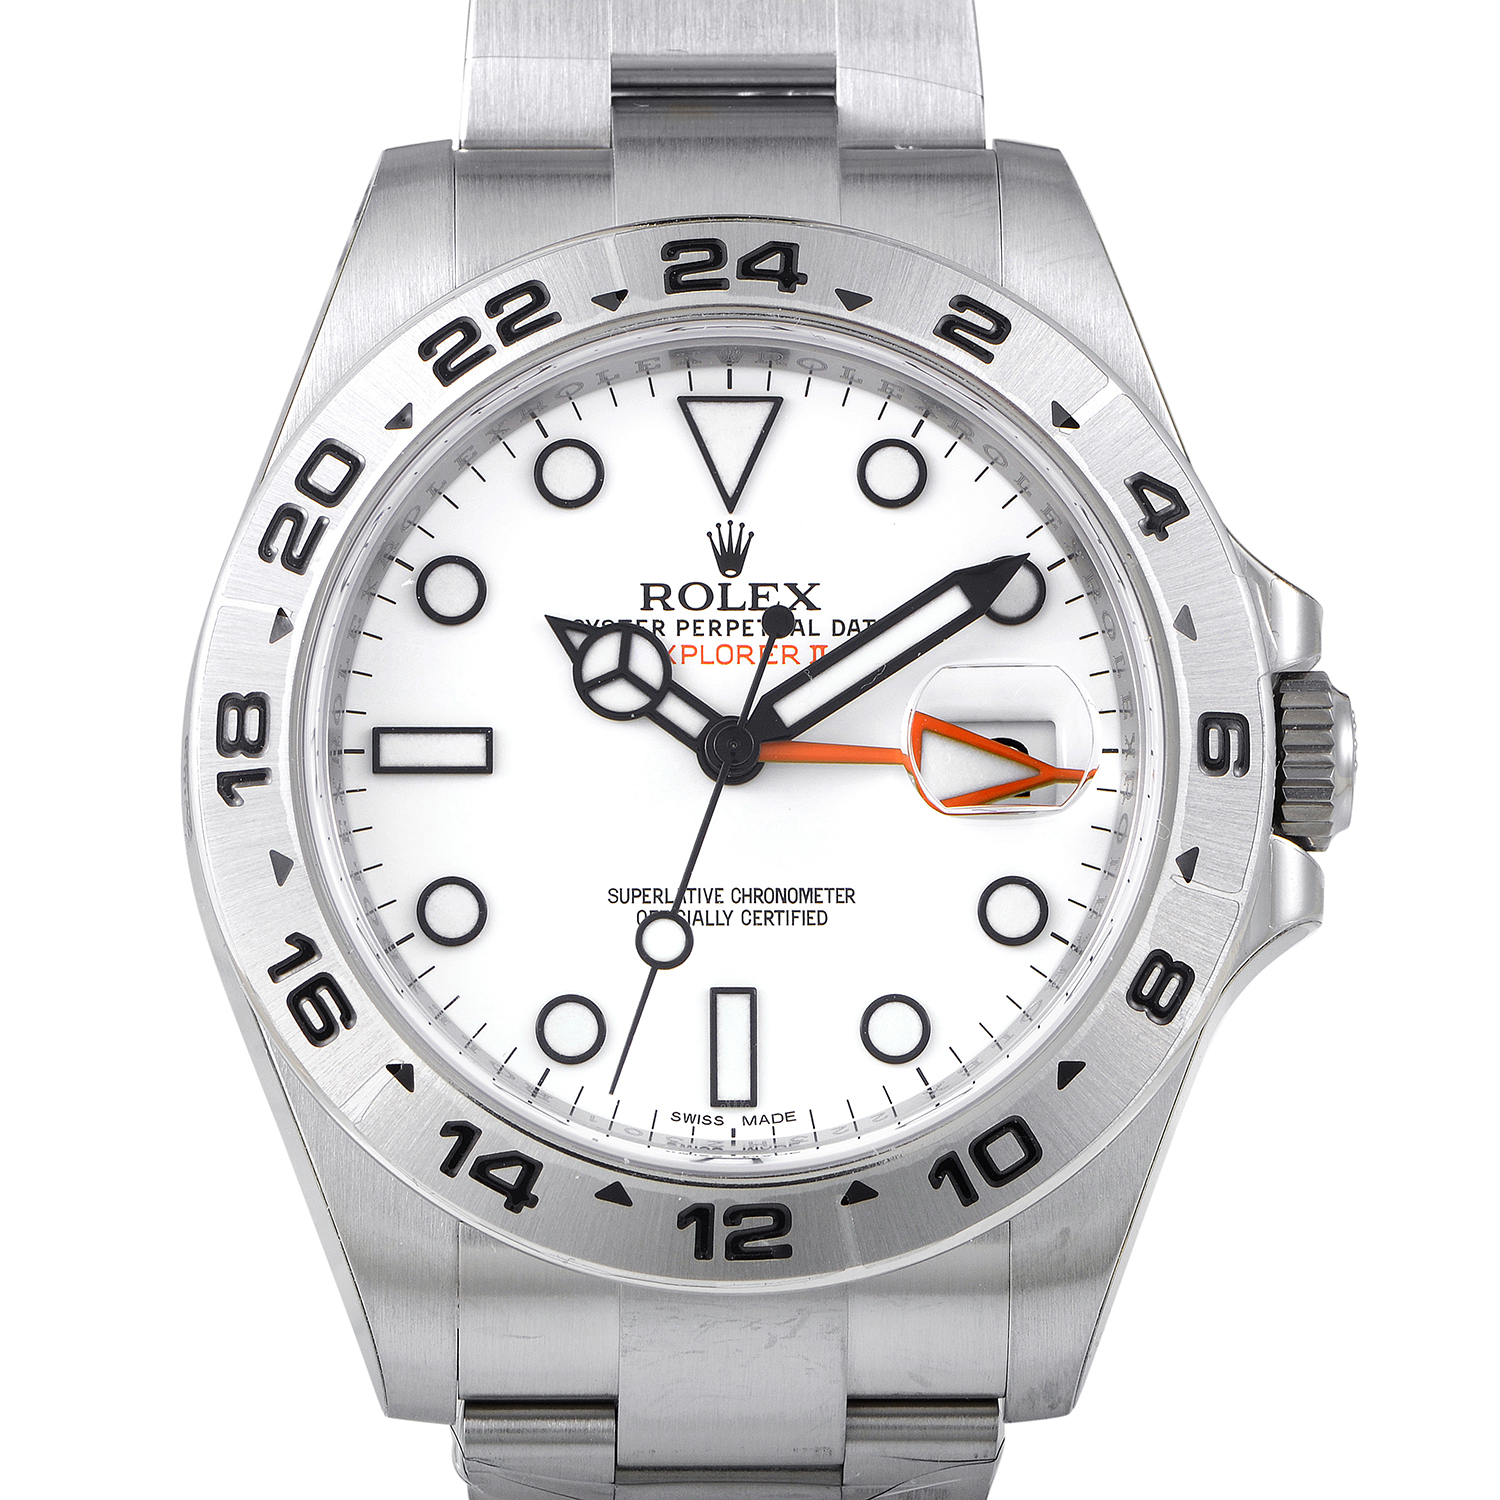 Oyster Perpetual Explorer II 216570 w